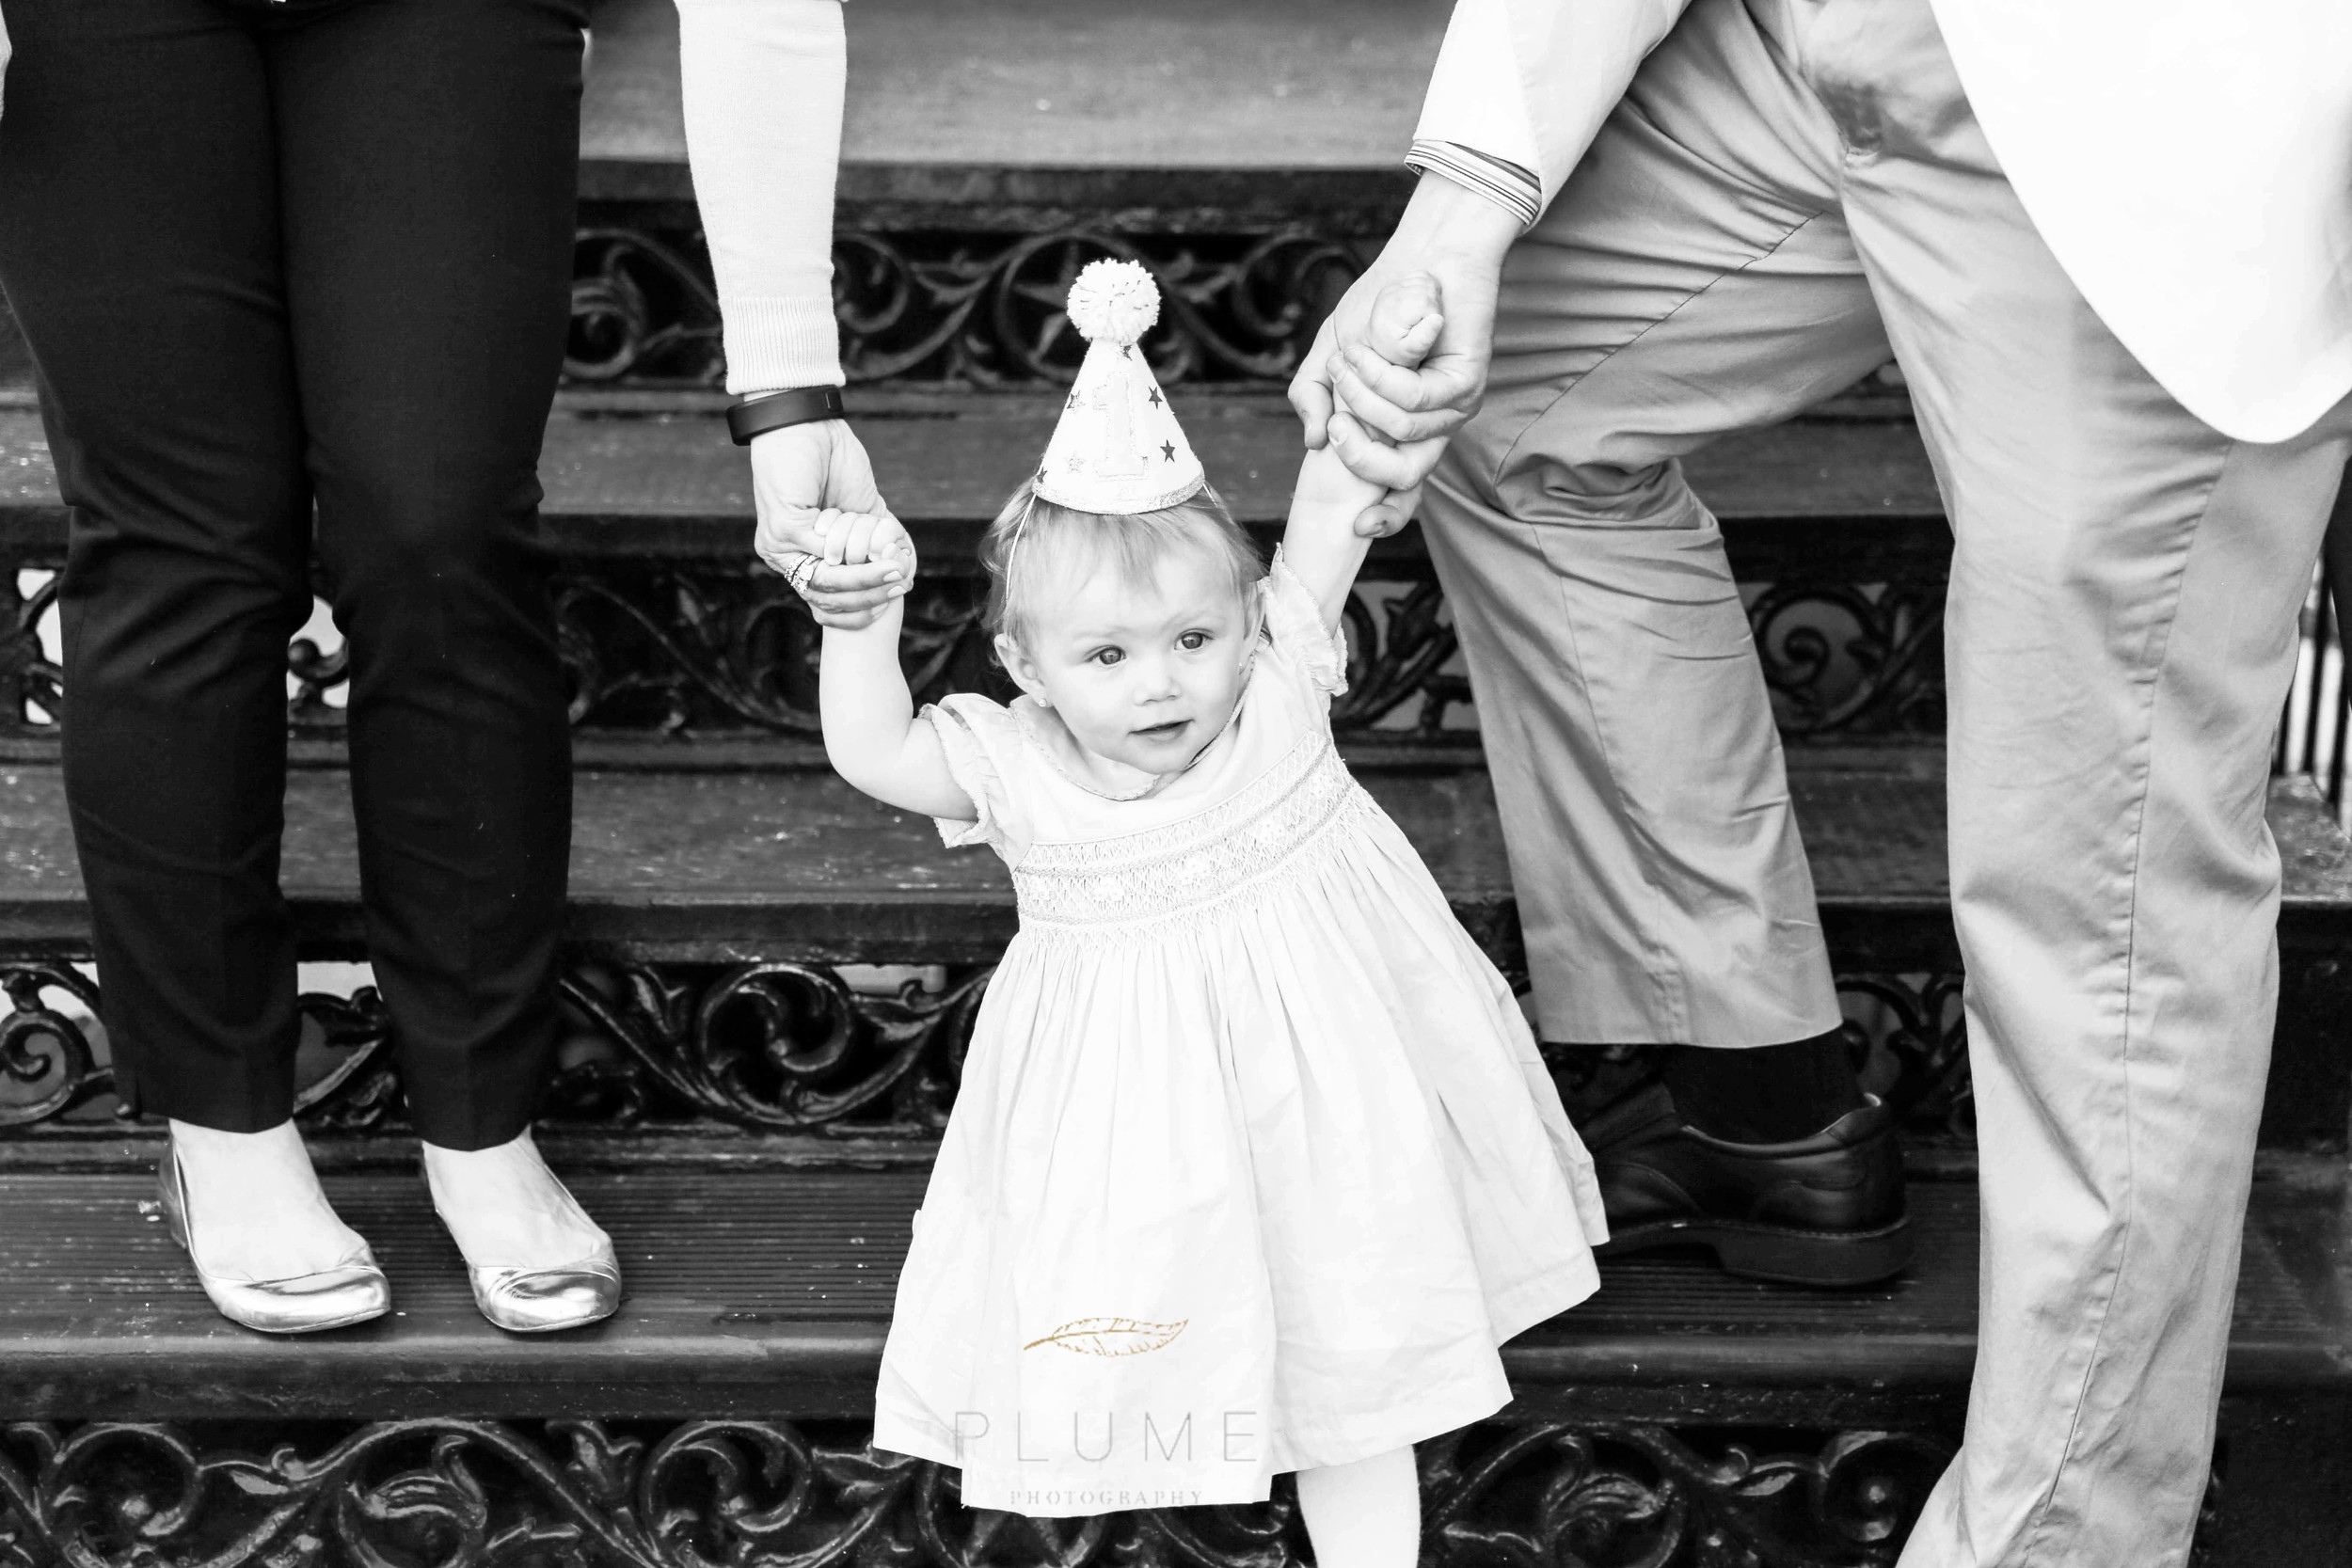 Adriana's First Birthday party at home on Capitol Hill with family and friends, Saturday, March 2015, Washington, D.C., Photo by Amanda Reynolds